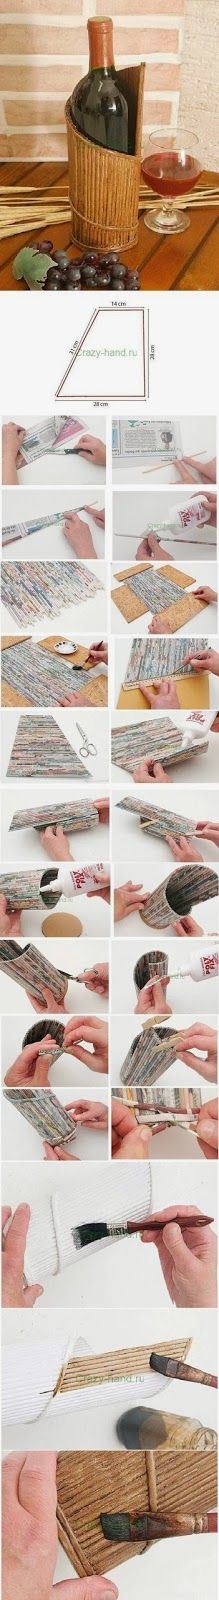 DIY Projects: Make a Wine Stand From Newspaper . I'm sure I could find another use